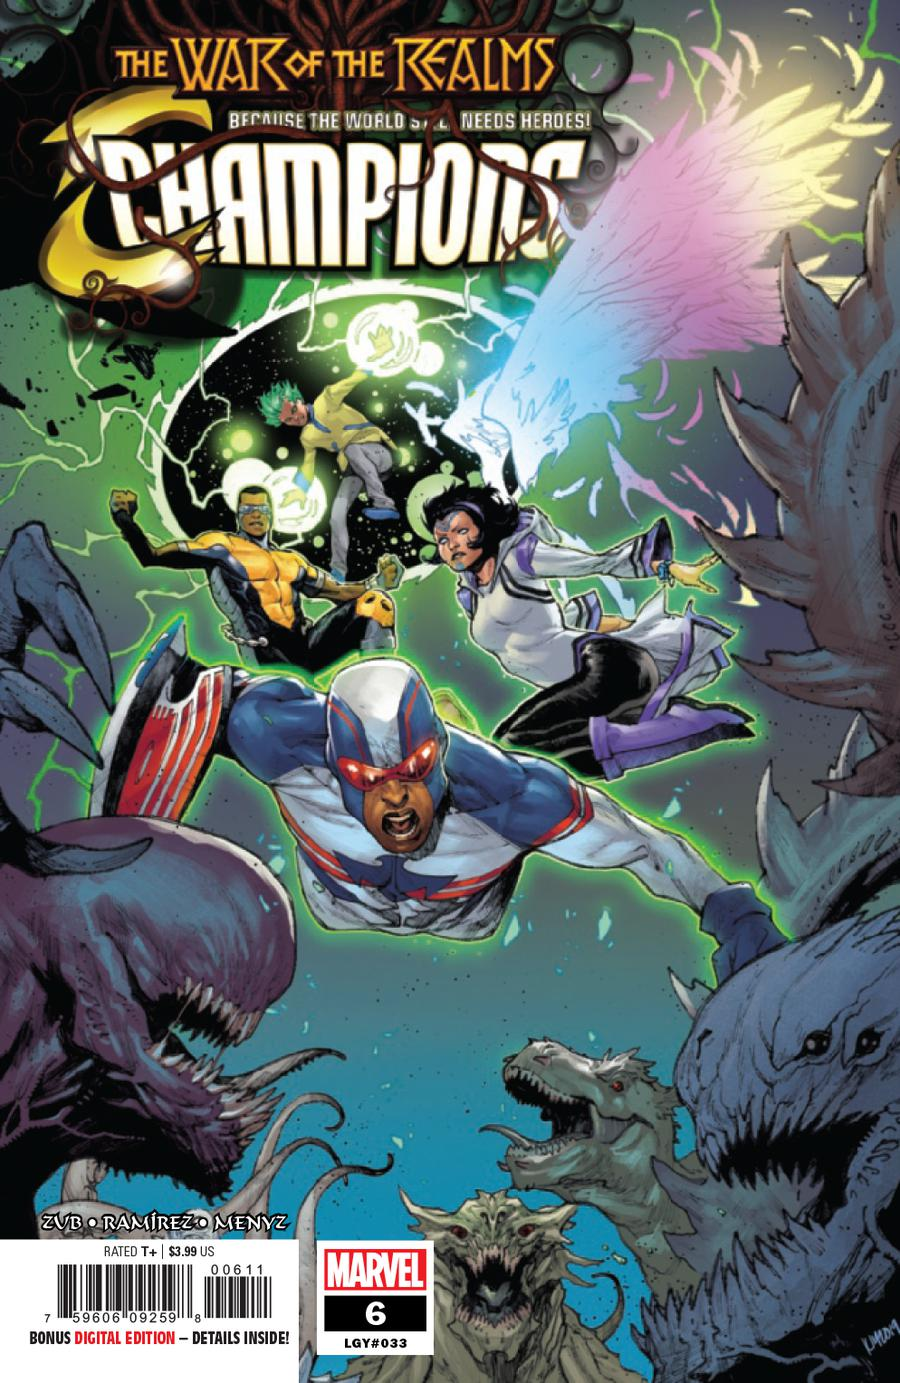 Champions (Marvel) Vol 3 #6 Cover A Regular Kim Jacinto Cover (War Of The Realms Tie-In)